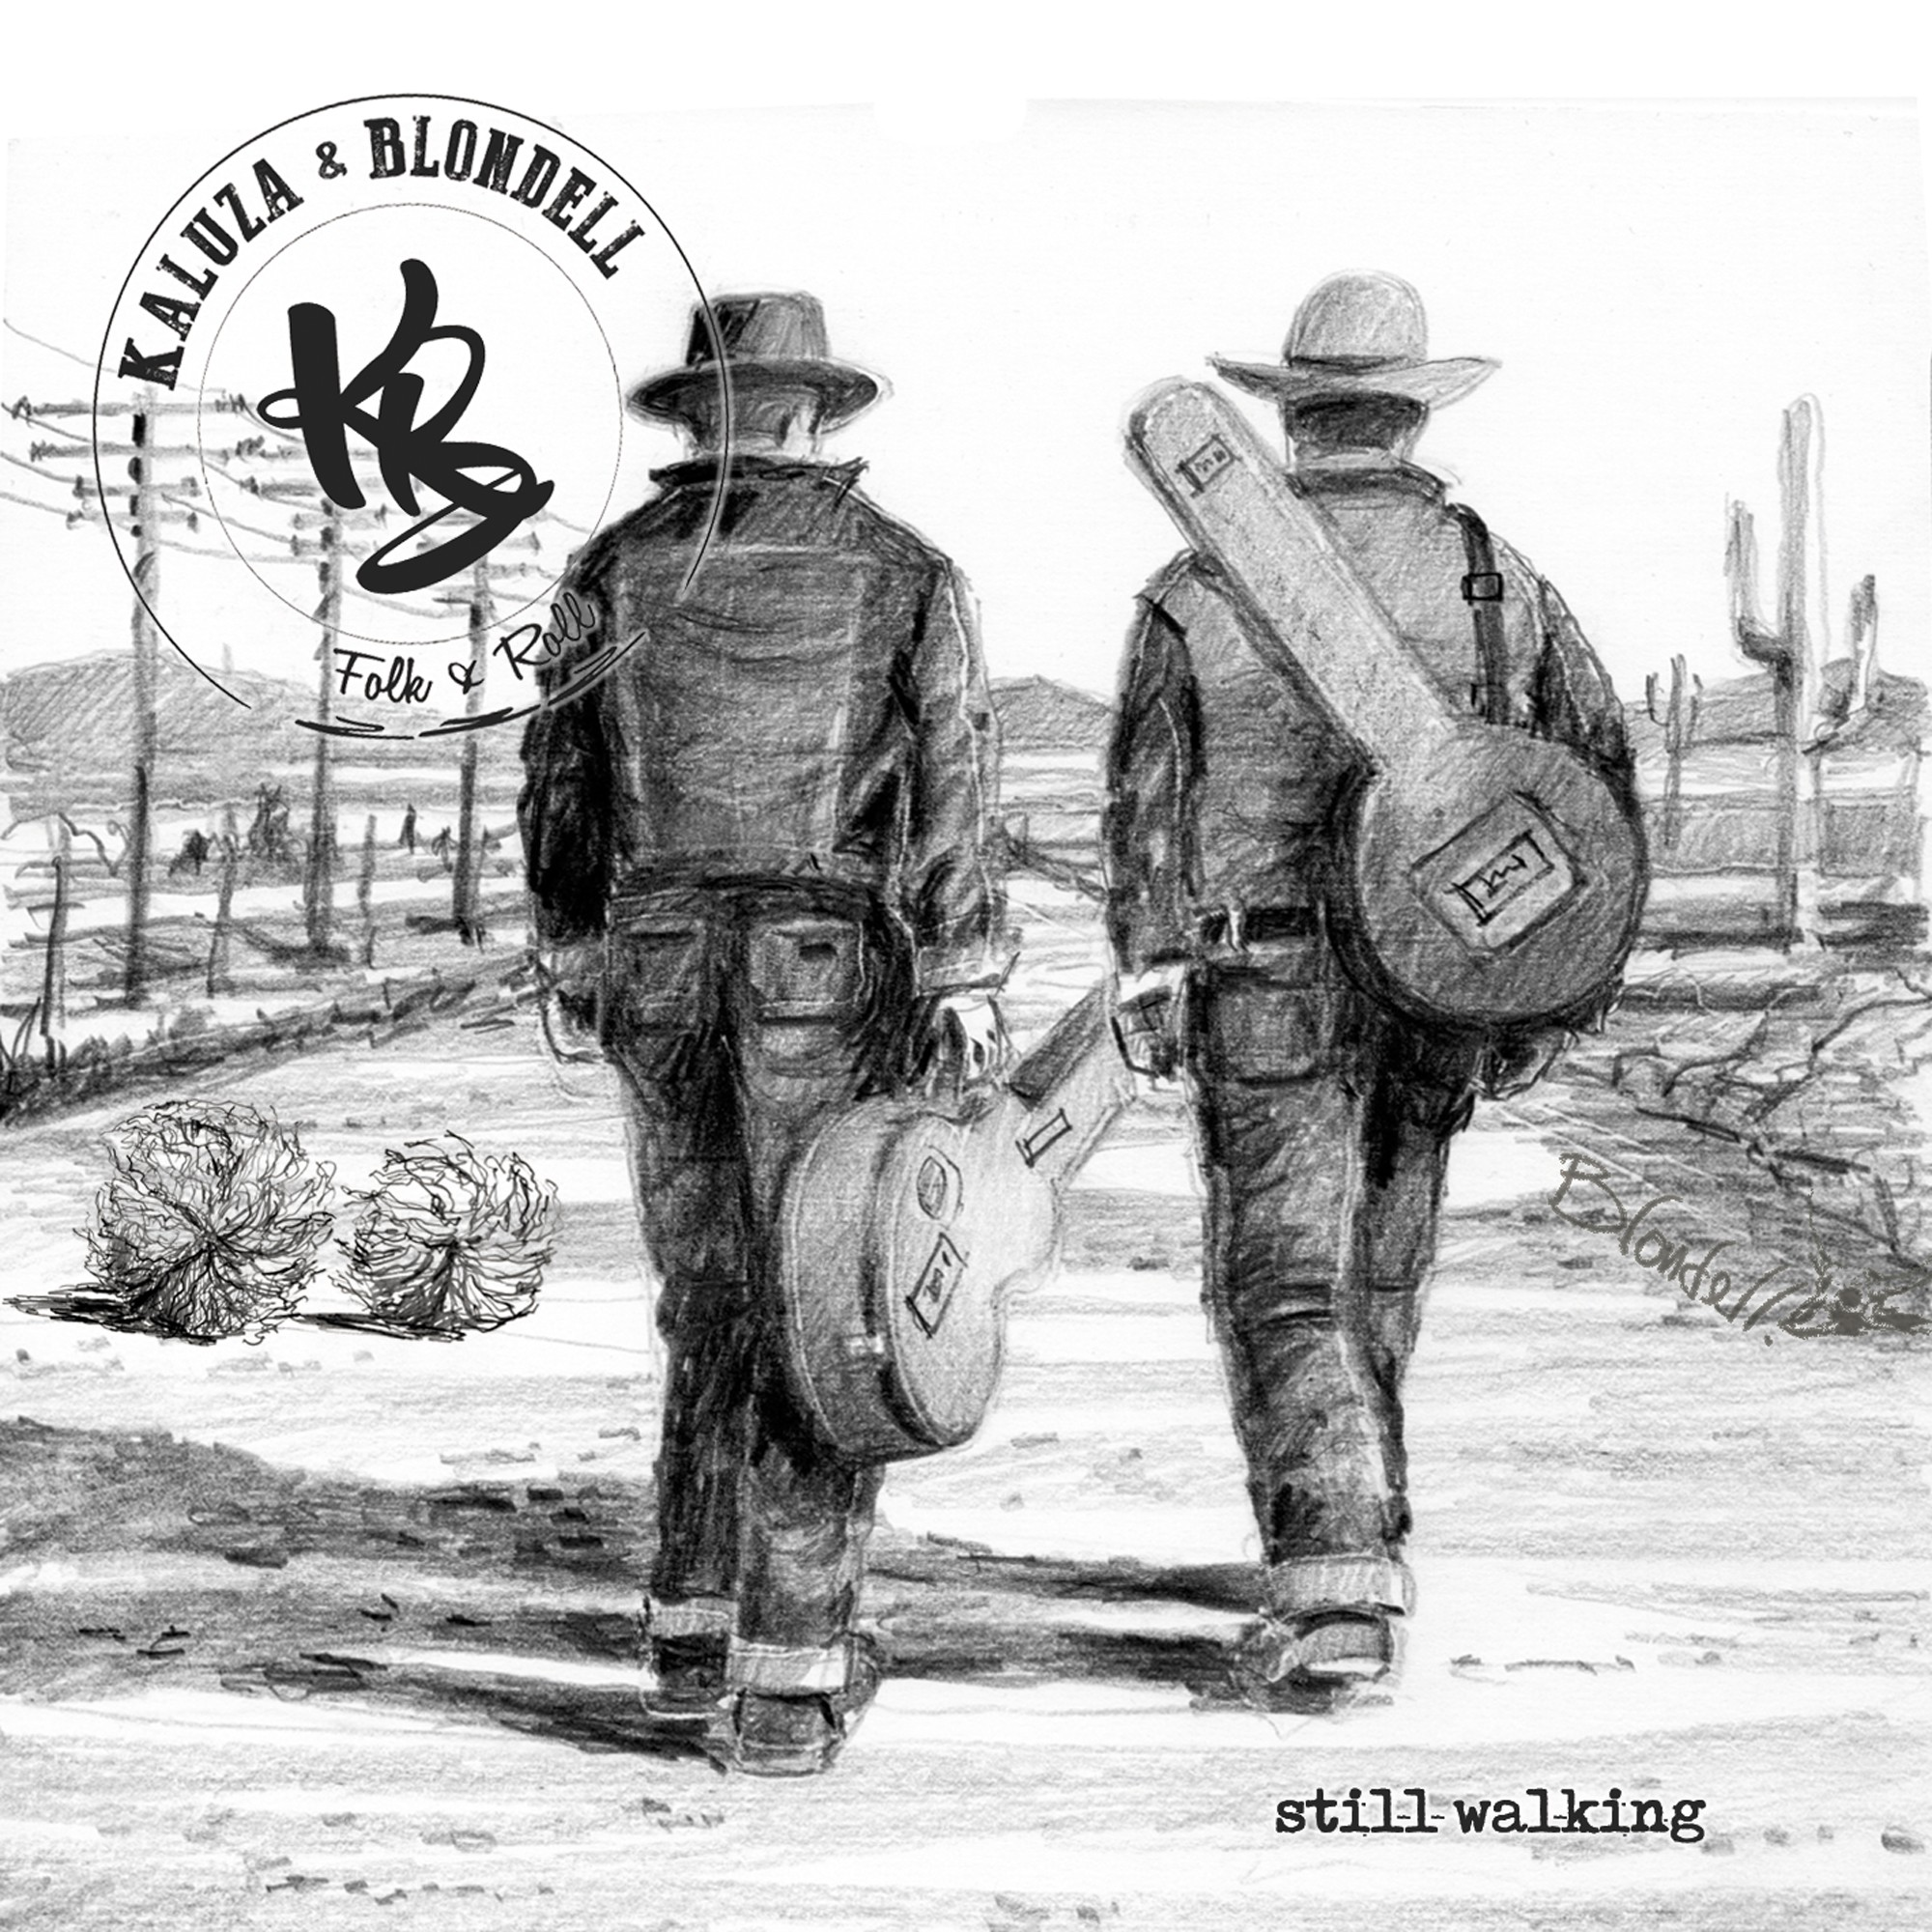 EP: Still Walking - Kaluza & Blondell